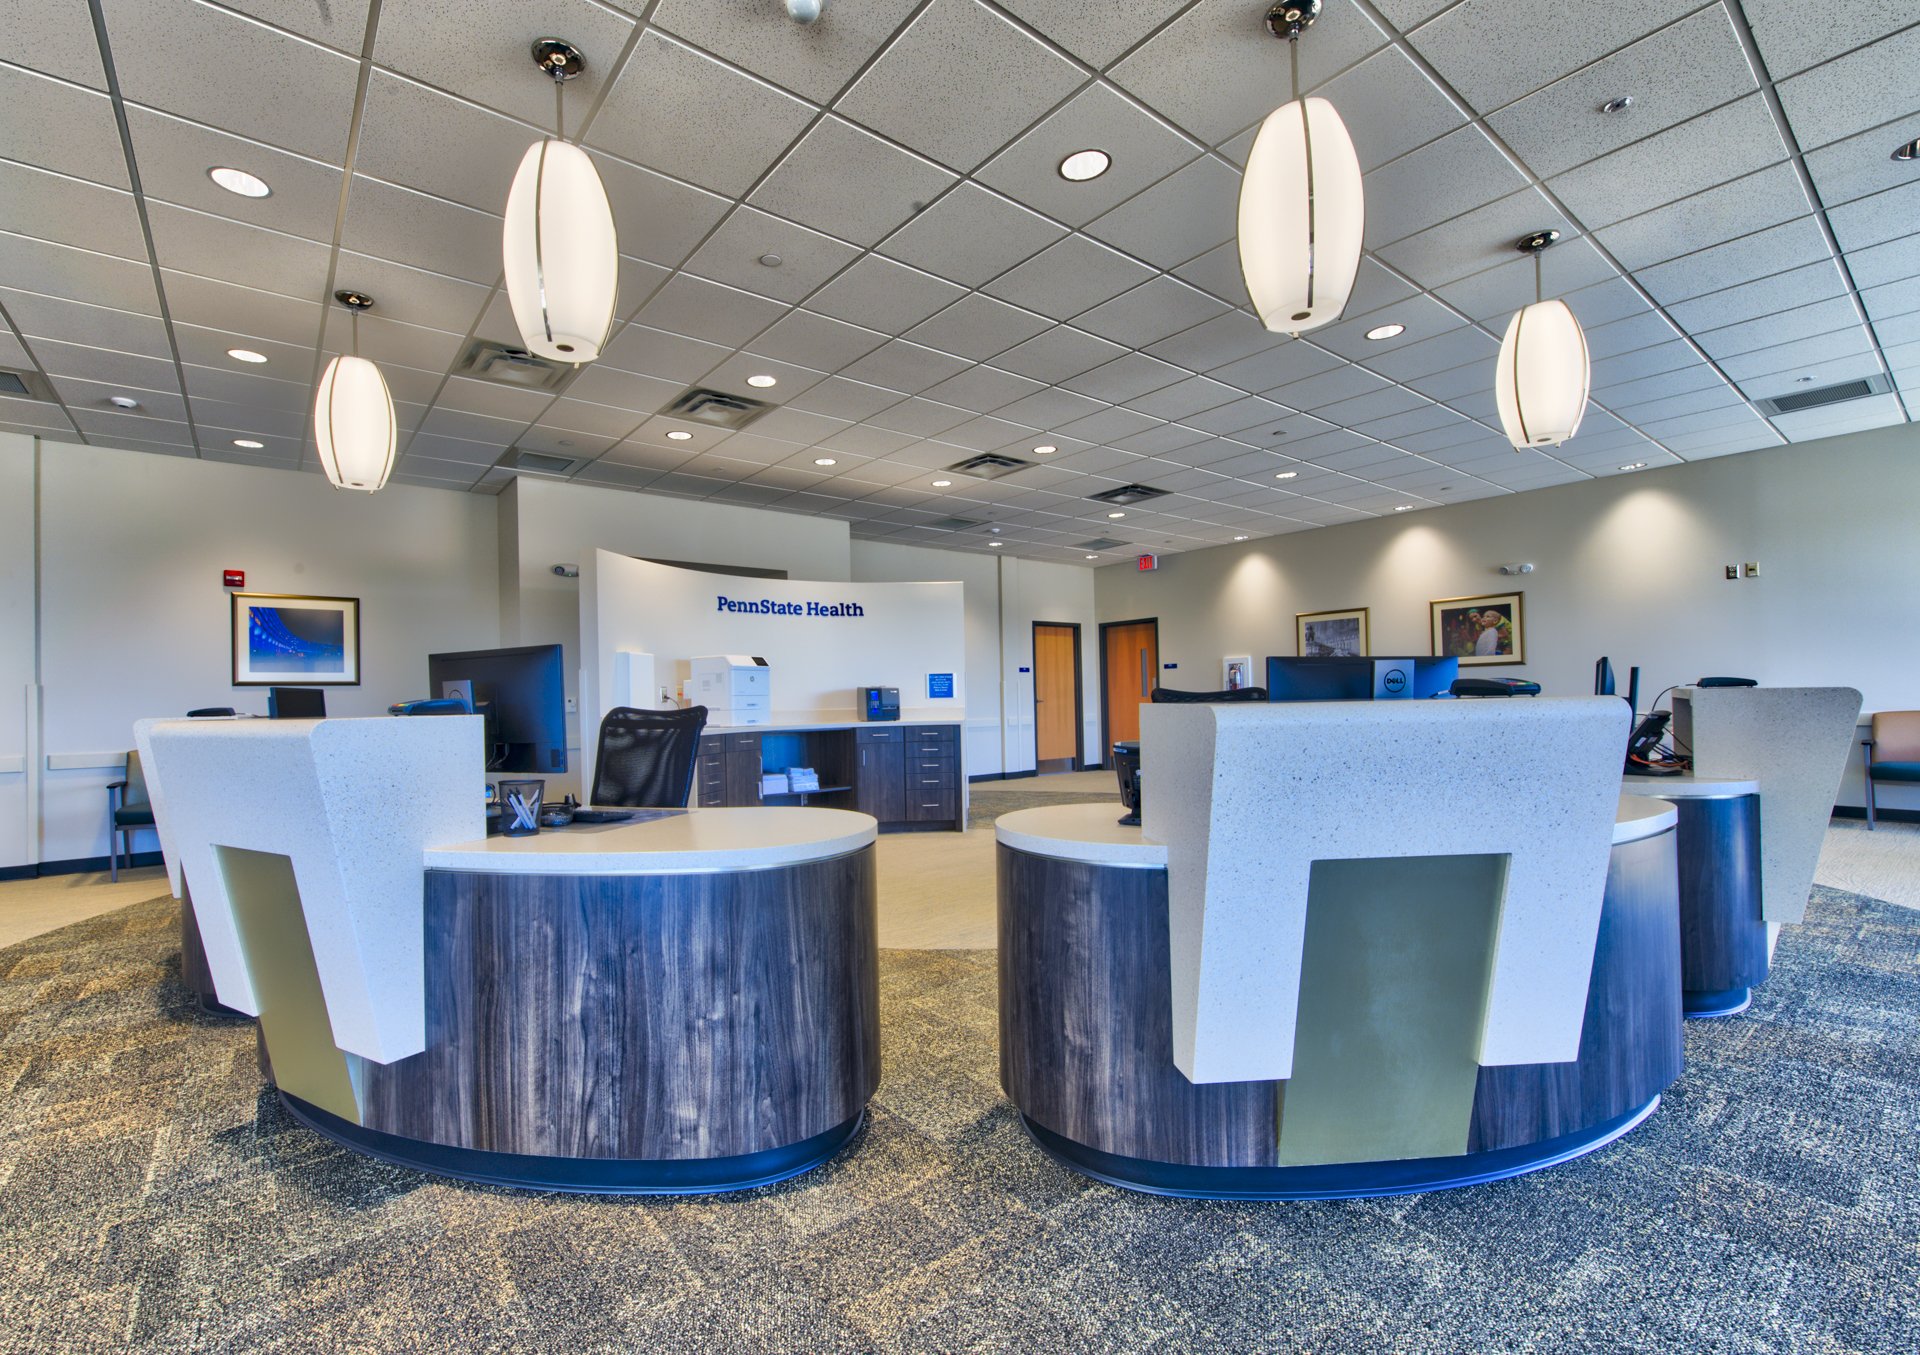 Inside the new Penn State Medical Group site in Mechanicsburg, four white pendulum lights hang down over the registration area, made up of blue desks with elevated white counters in a semicircle in the center of a room, which has the Penn State Health logo on the rear wall.